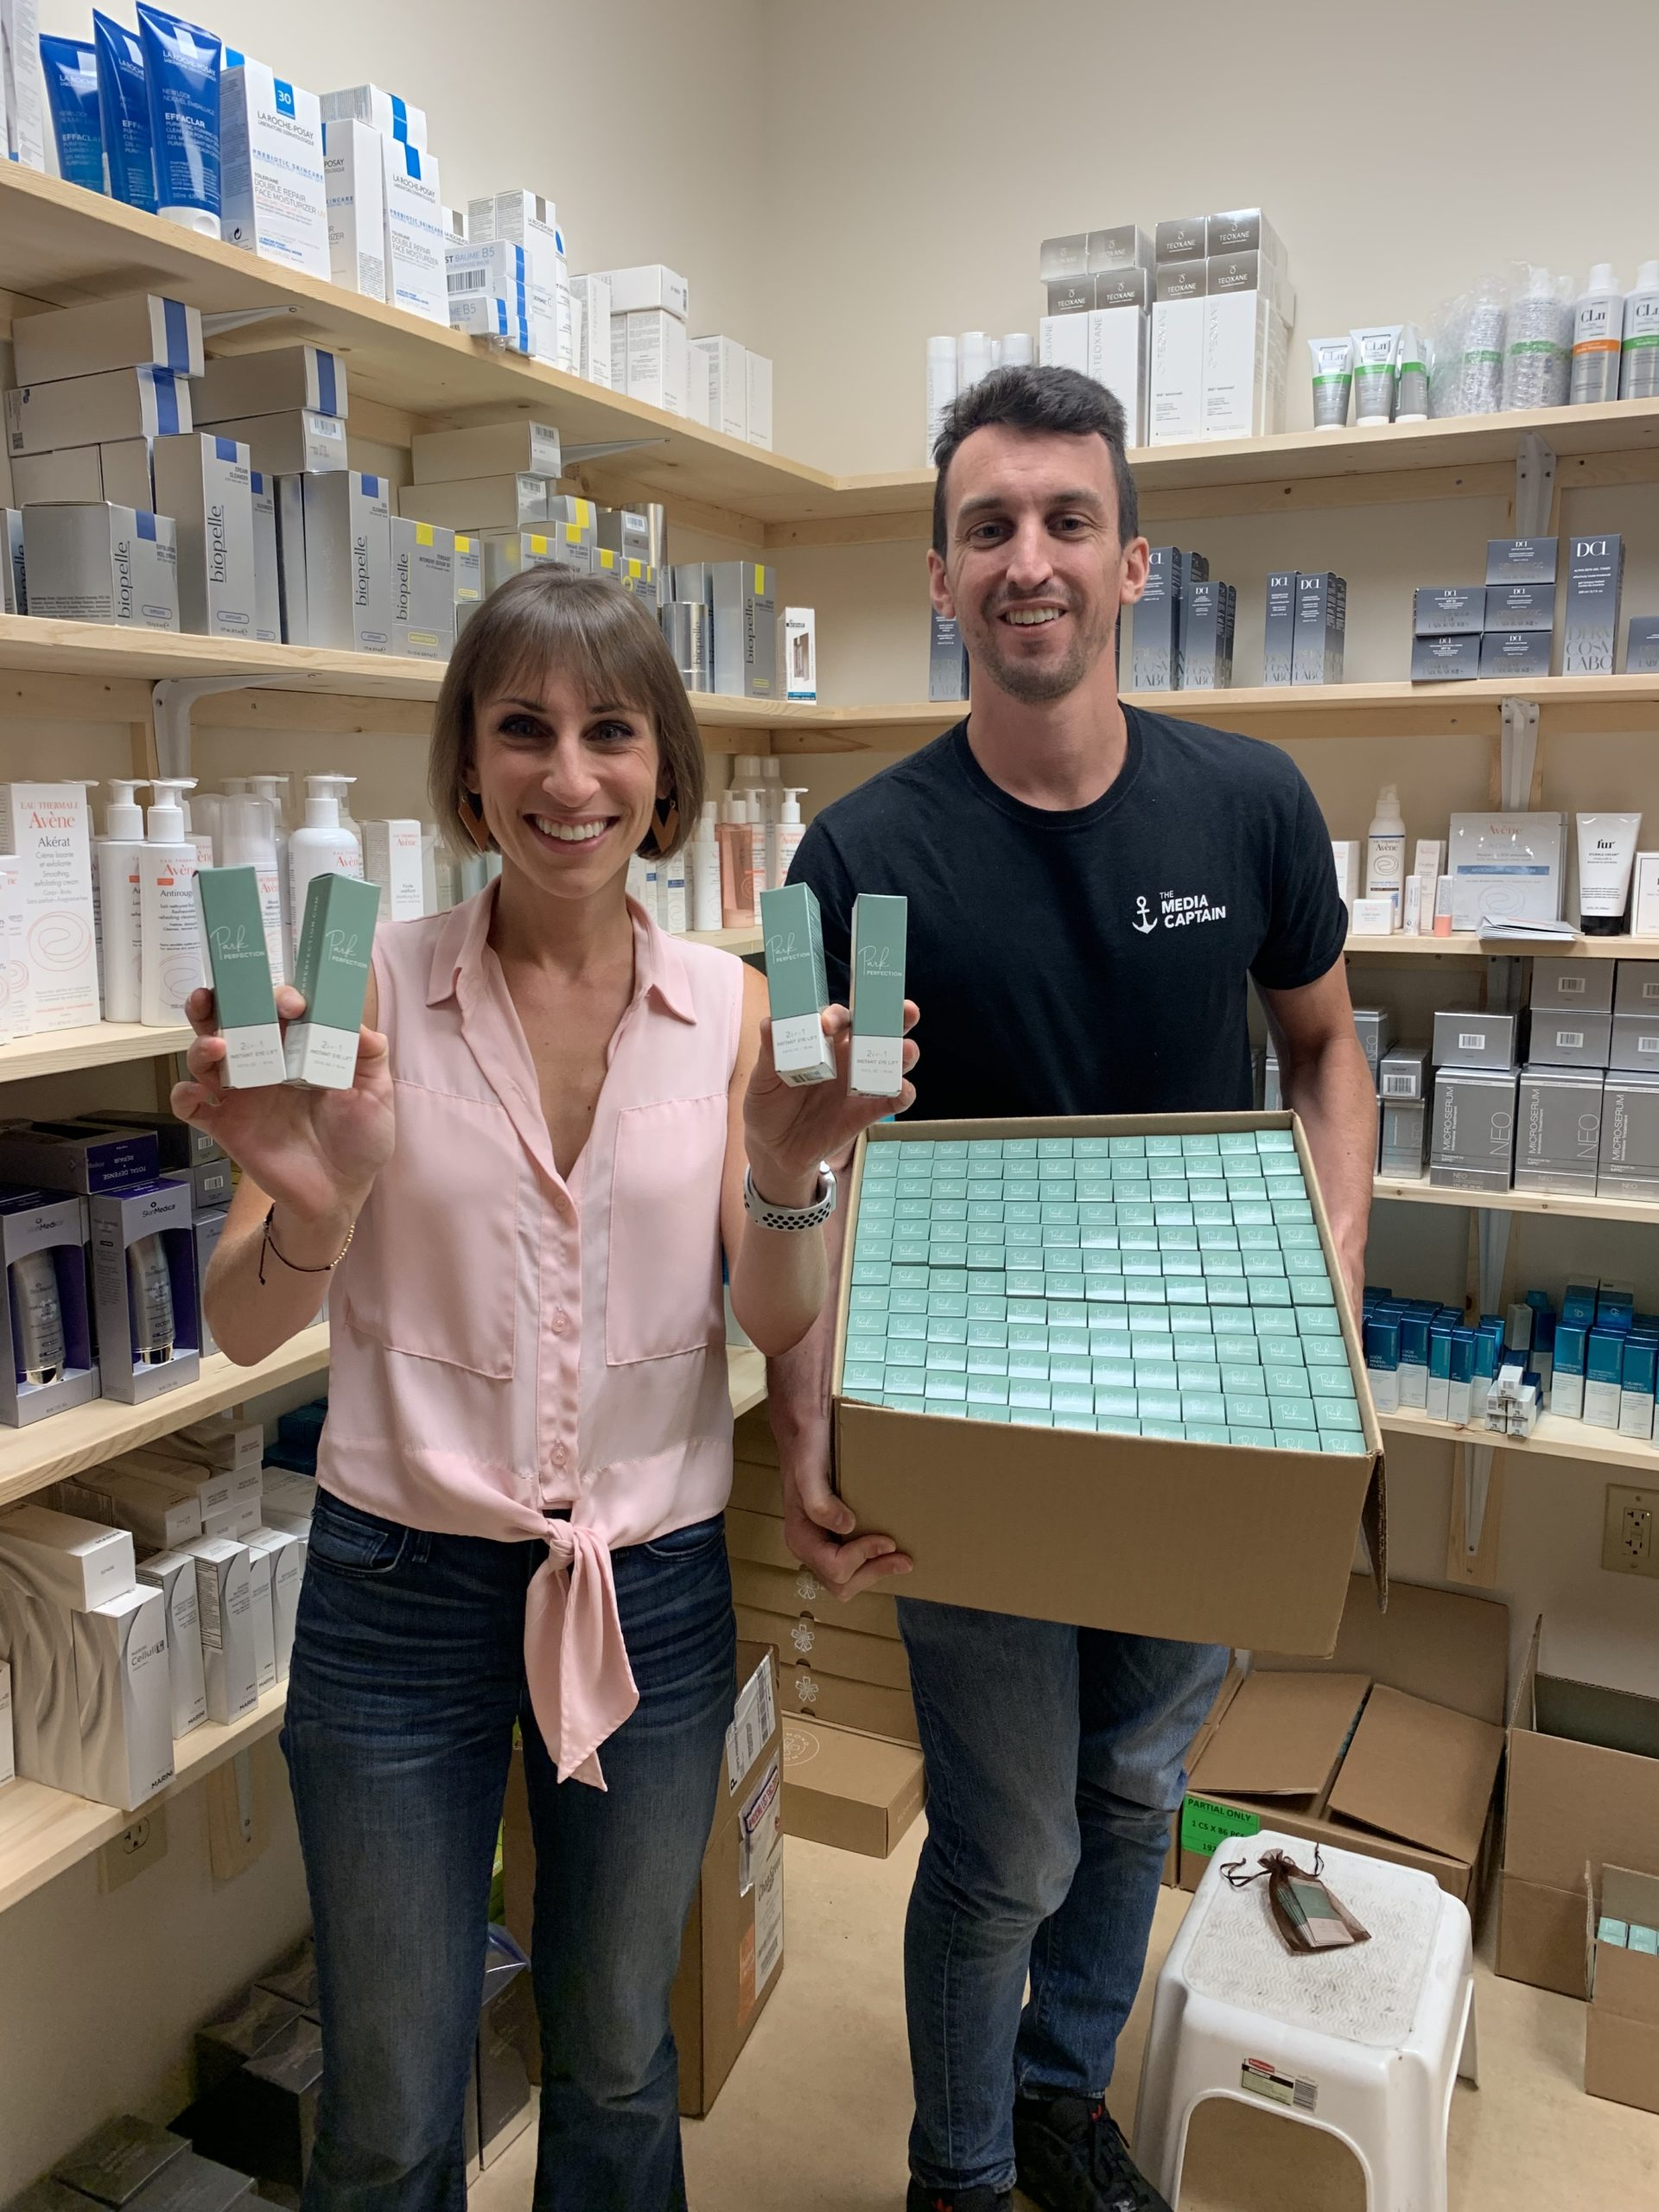 Stefanie & Jason Parks holding up their own skin care line, Park Perfection.